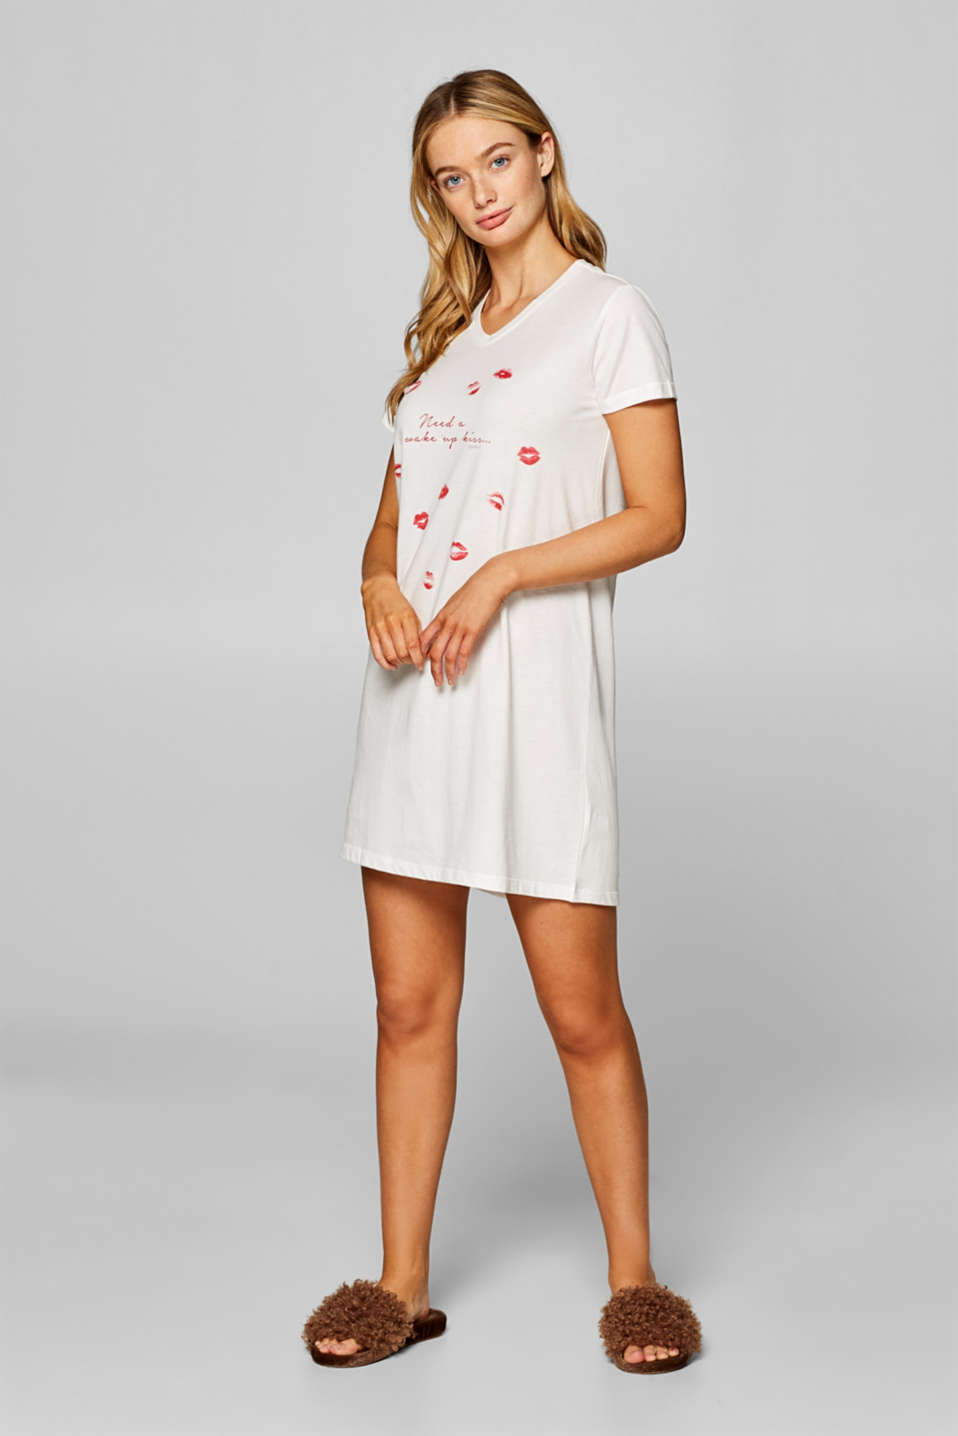 Esprit - Jersey nightshirt with a pout print